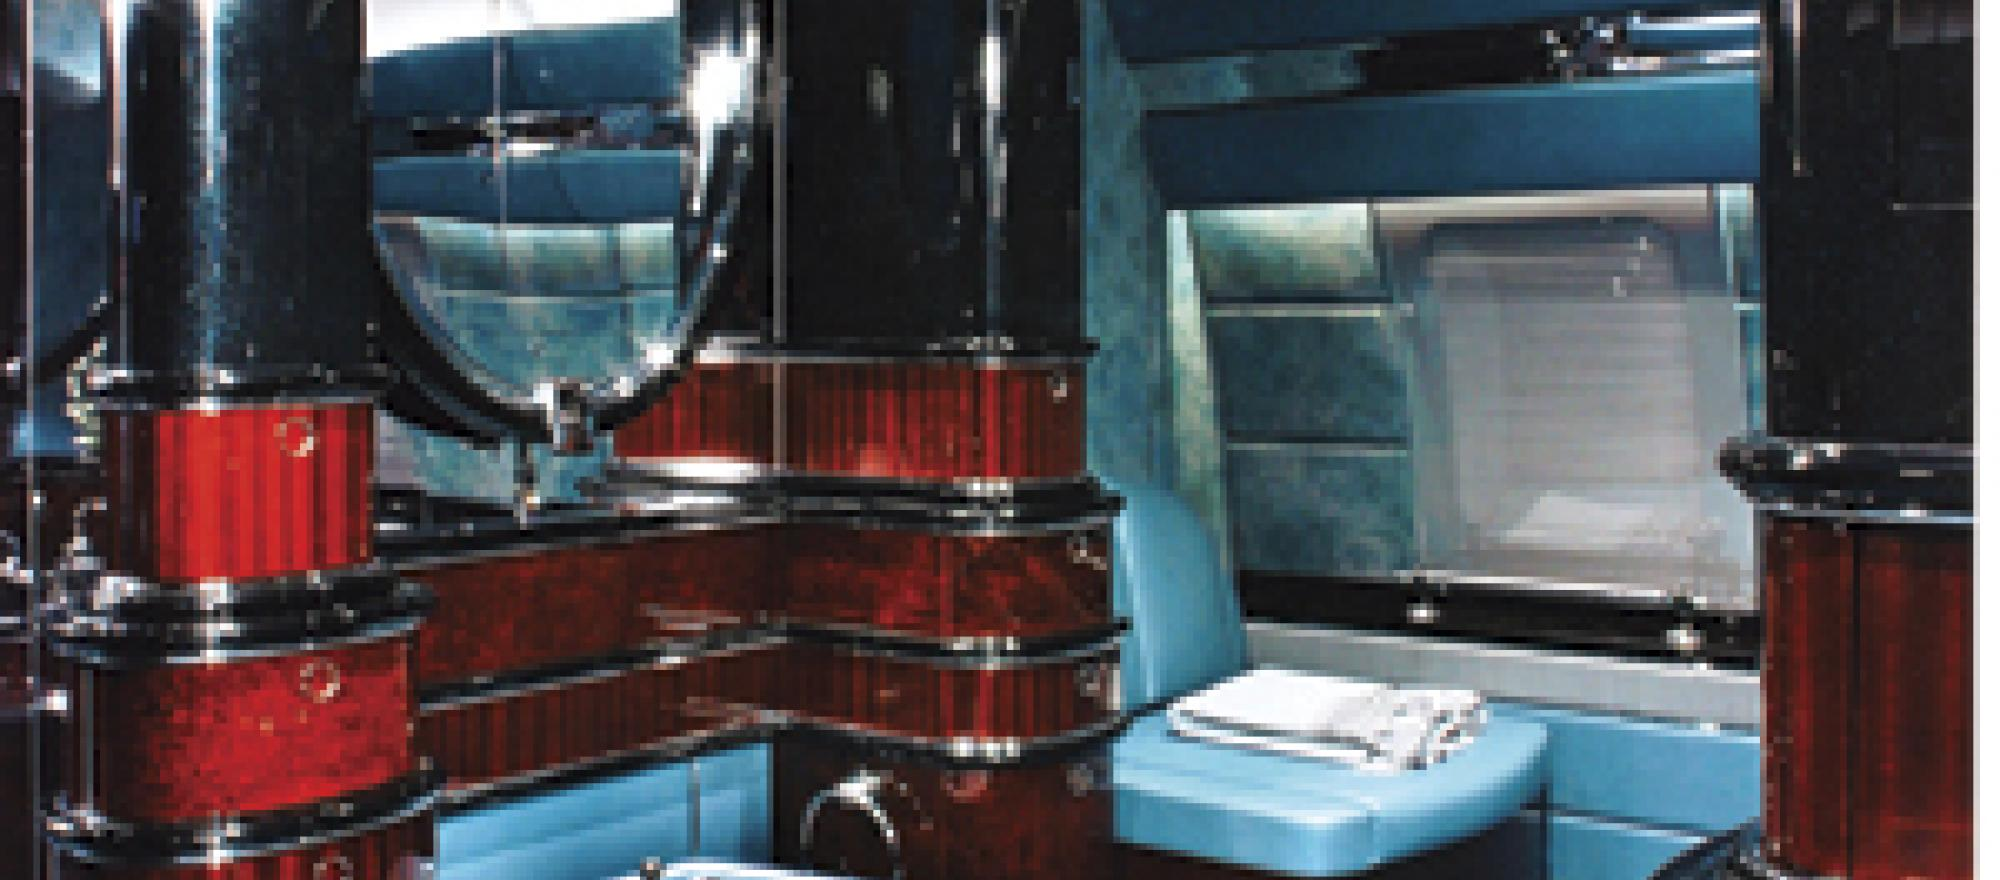 Lavatories on some large jets rival those in high-end homes.